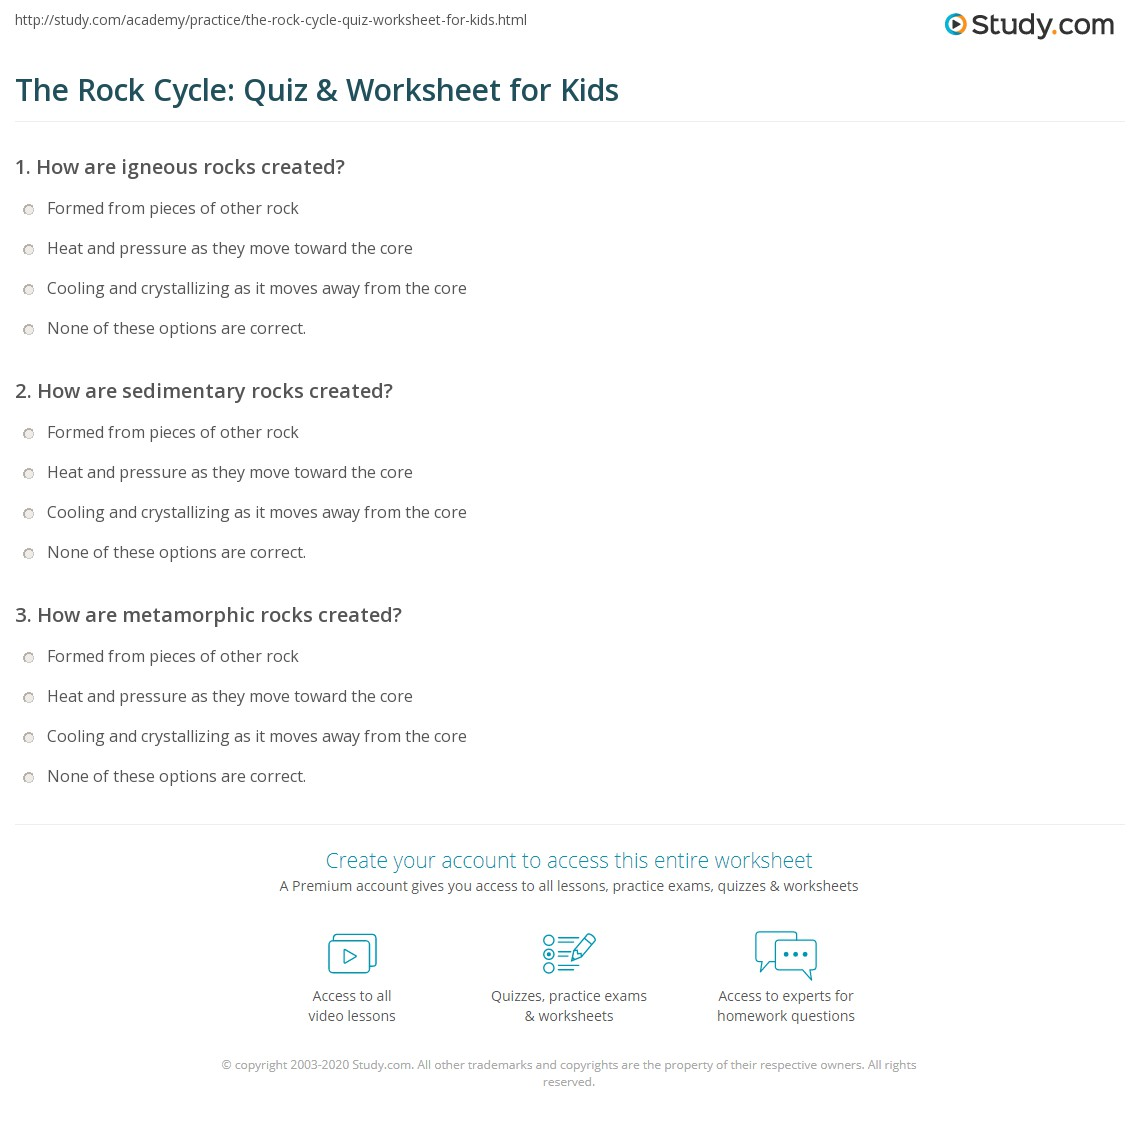 Worksheets The Rock Cycle Worksheets the rock cycle quiz worksheet for kids study com print lesson definition facts worksheet